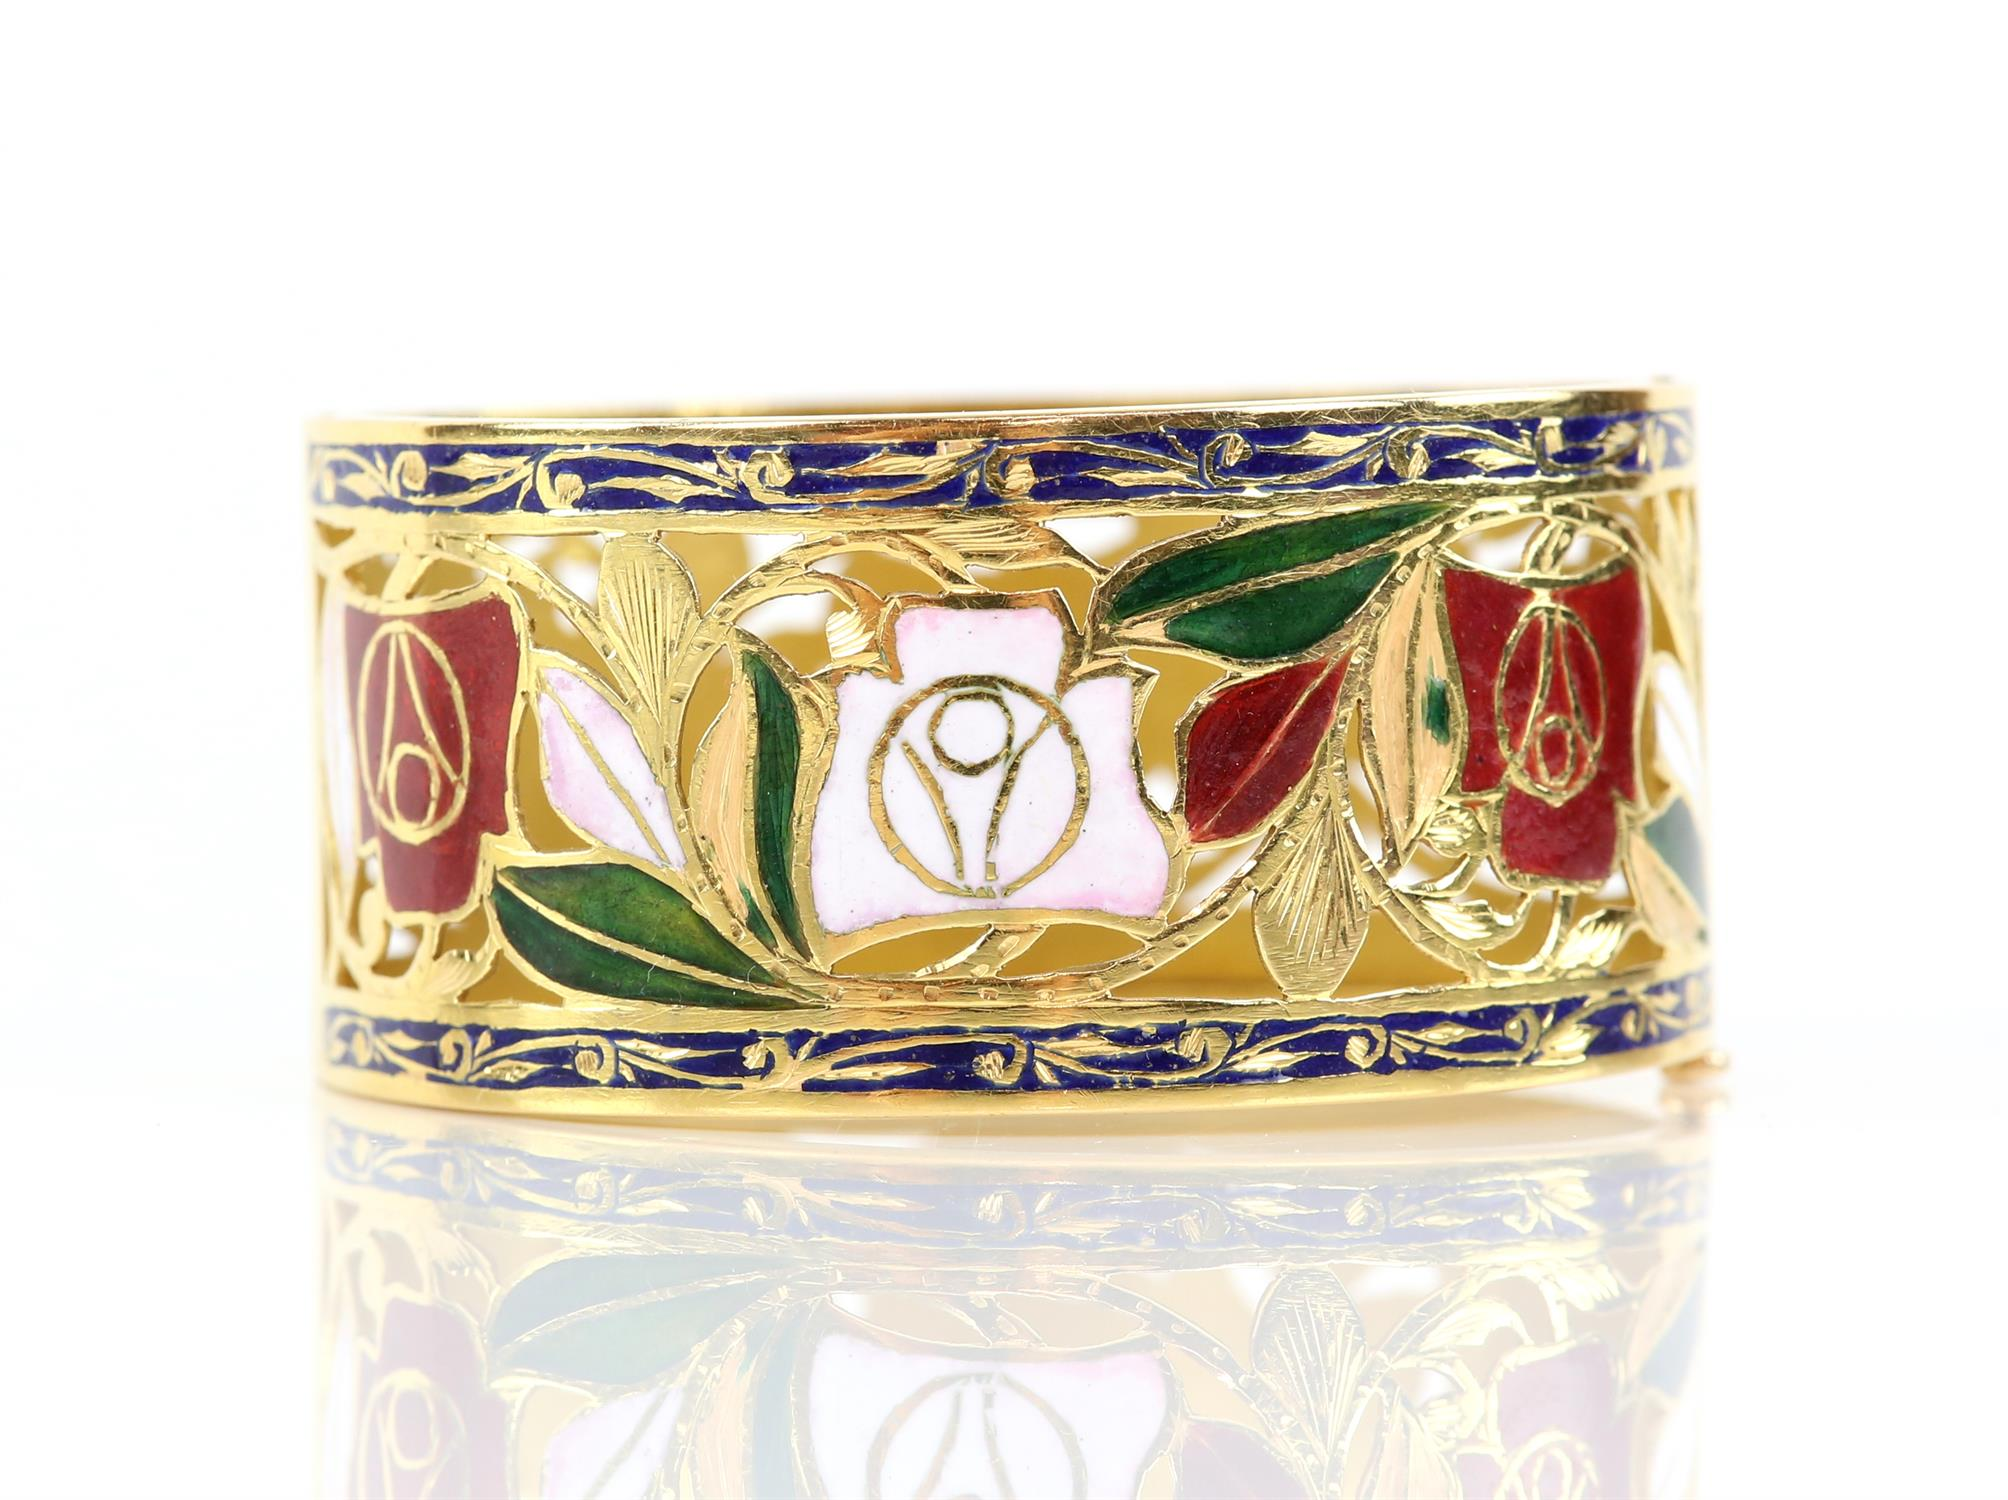 Enamel red and white rose gold pierced bangle, with enamel leaves and scrolled blue enamel borders, - Image 2 of 7